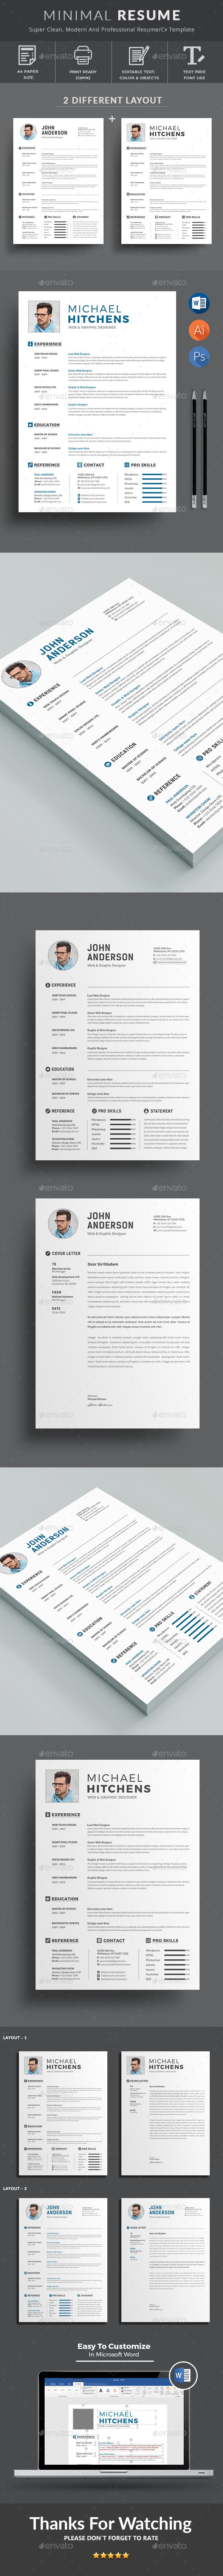 Resume - Resumes Stationery Download here: https://graphicriver.net/item/resume/19698912?ref=classicdesignp